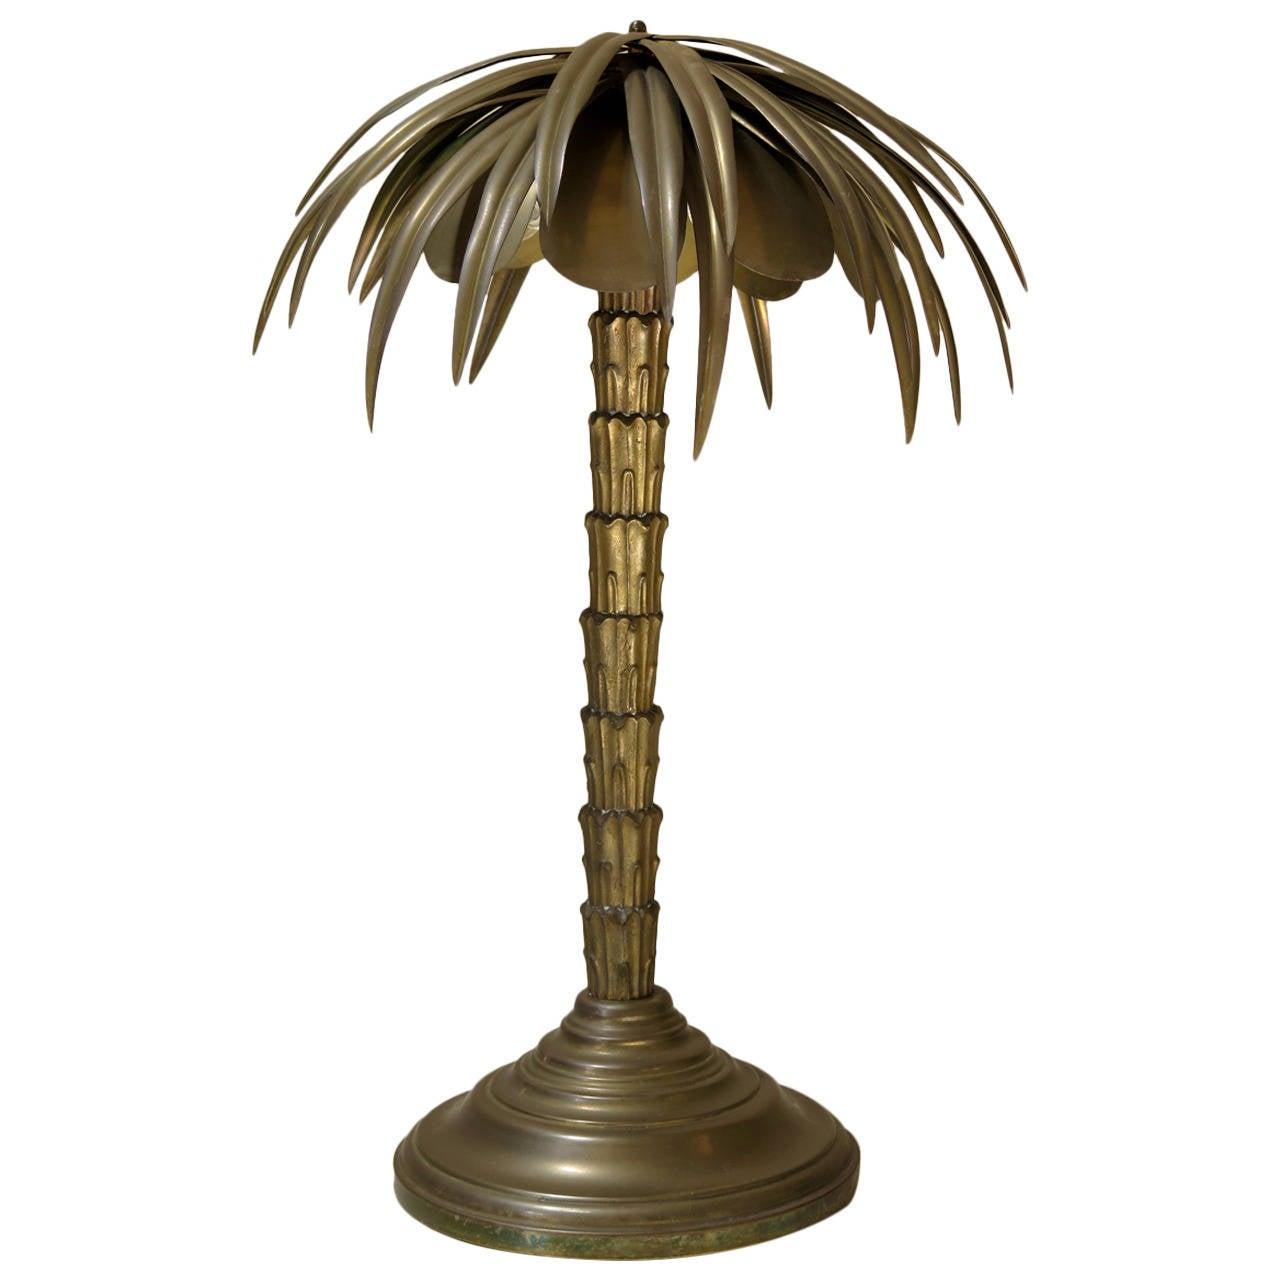 Heavy Brass Palm Tree Lamp France Circa 1900s At 1stdibs